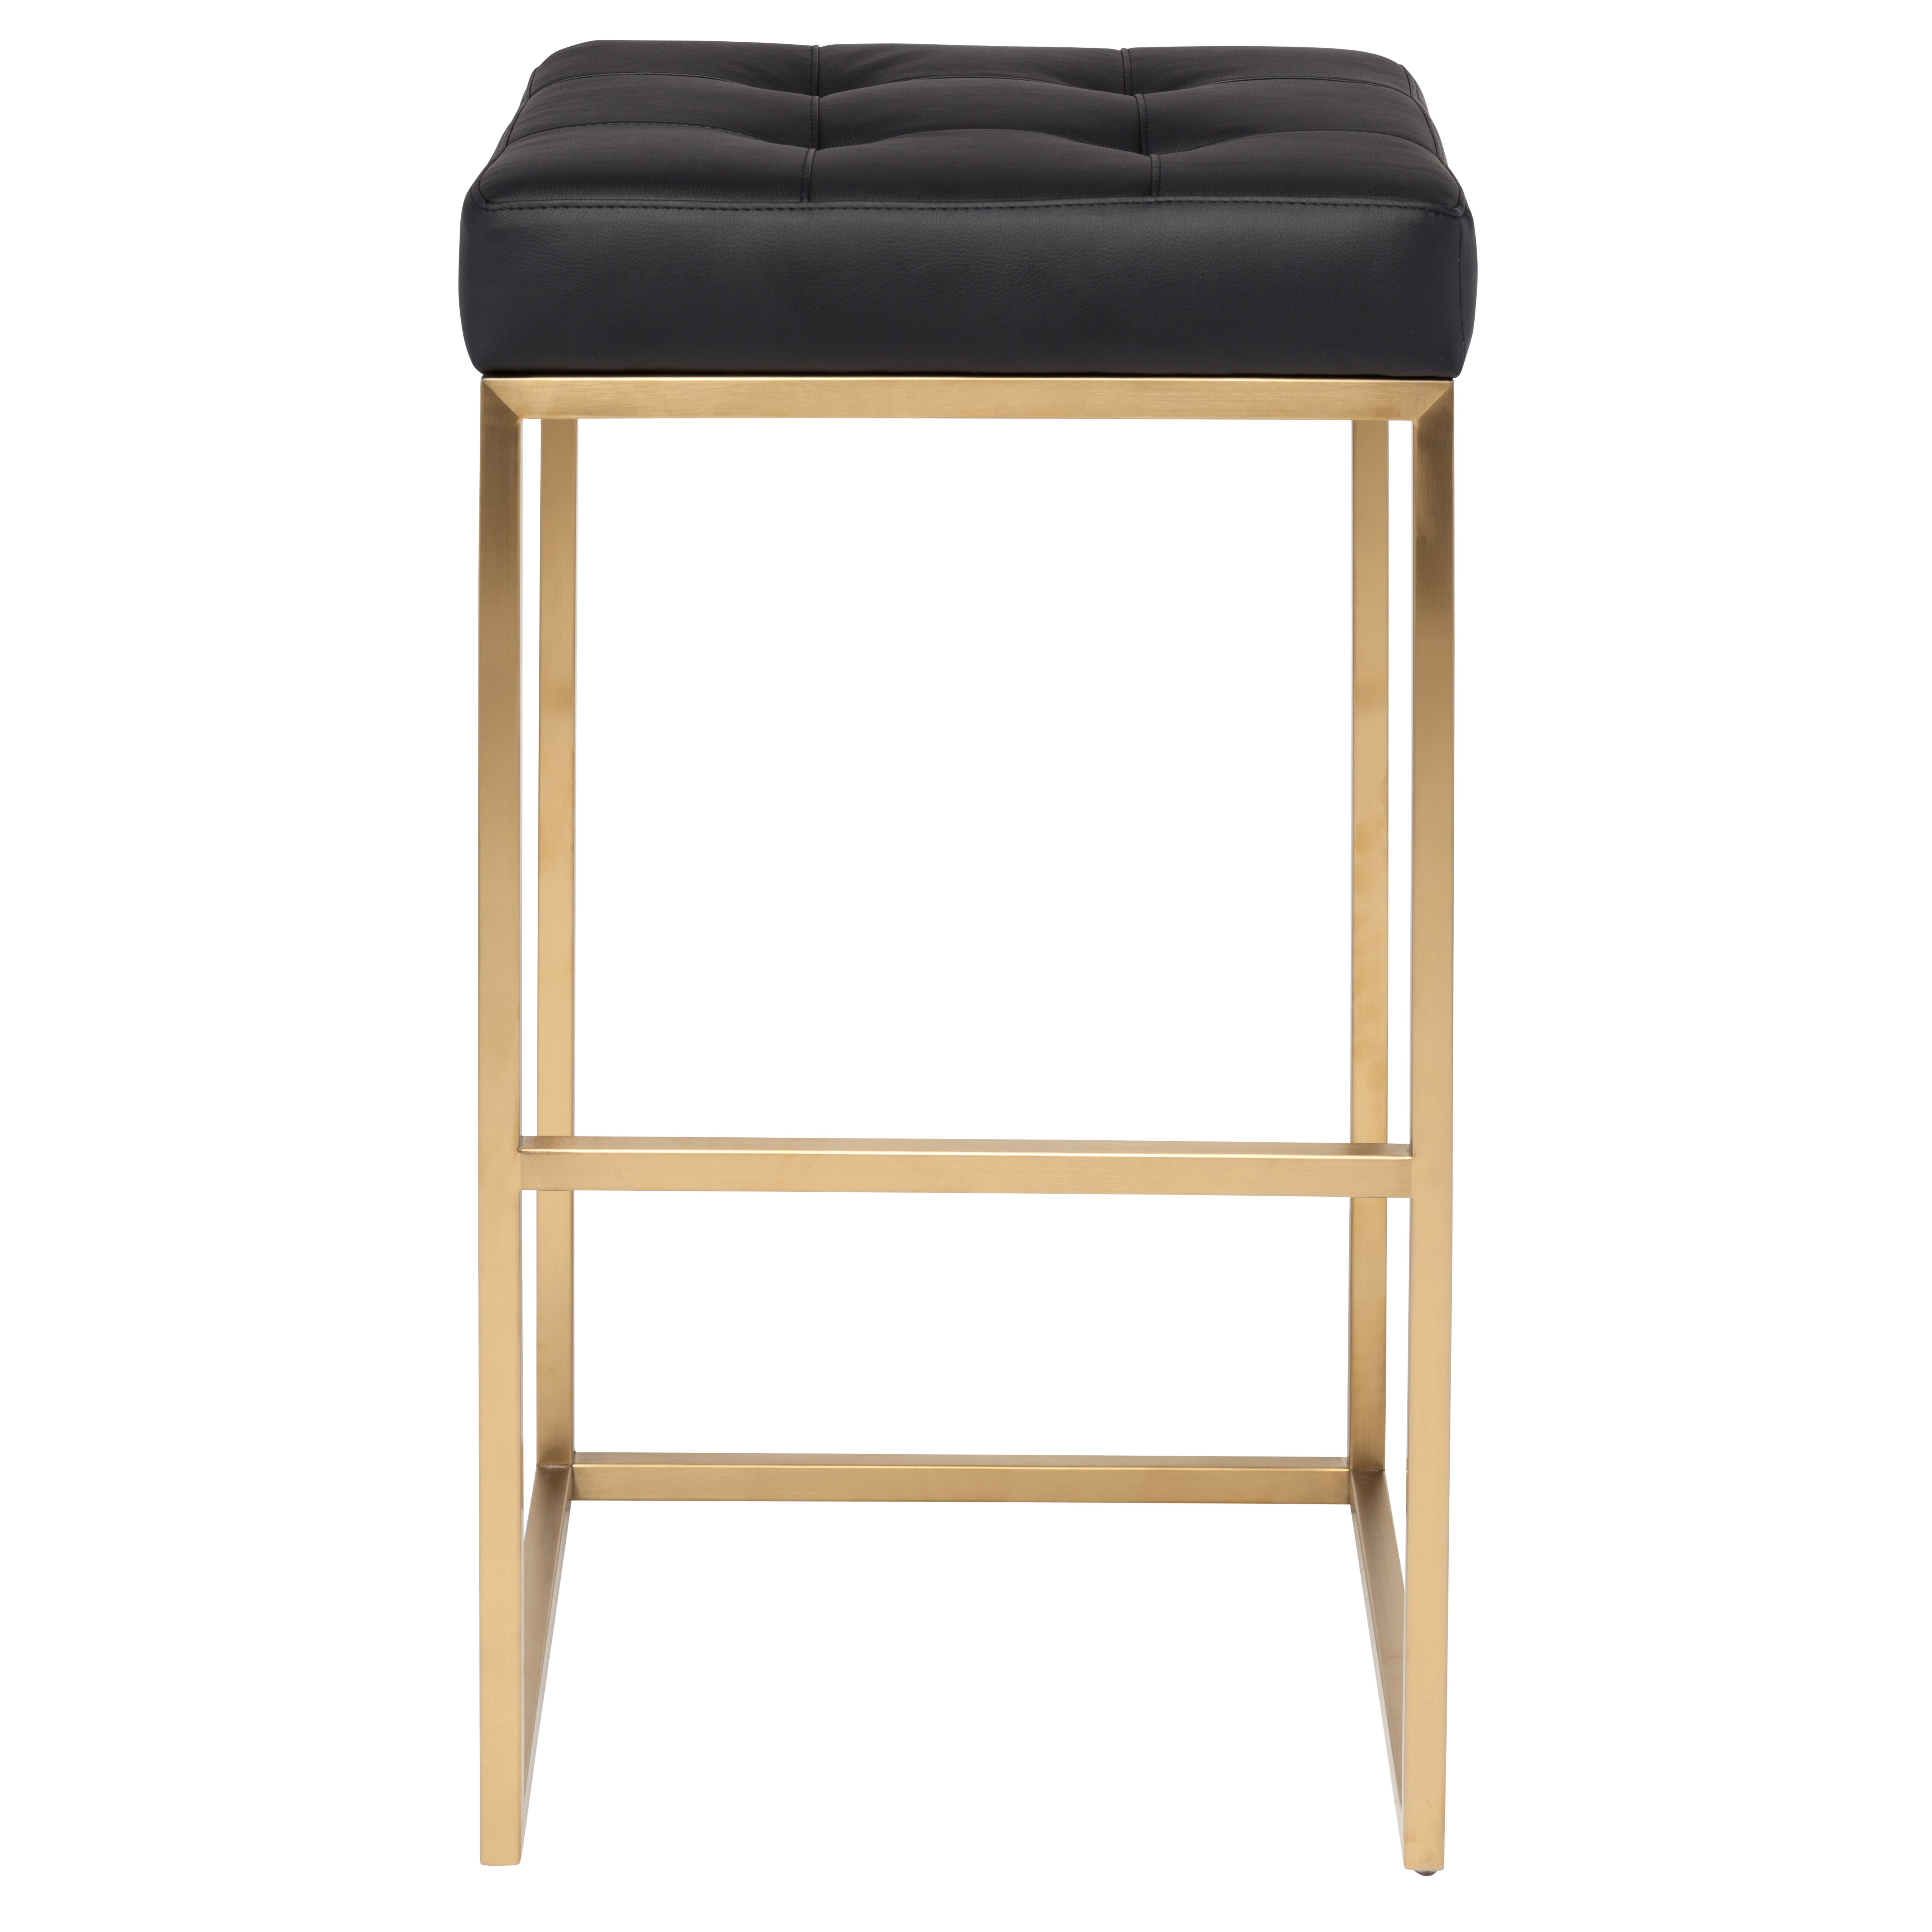 Nuevo Chi 2975quot Bar Stool amp Reviews Wayfair : Nuevo Chi 2975 Bar Stool from www.wayfair.com size 5103 x 5103 jpeg 1067kB